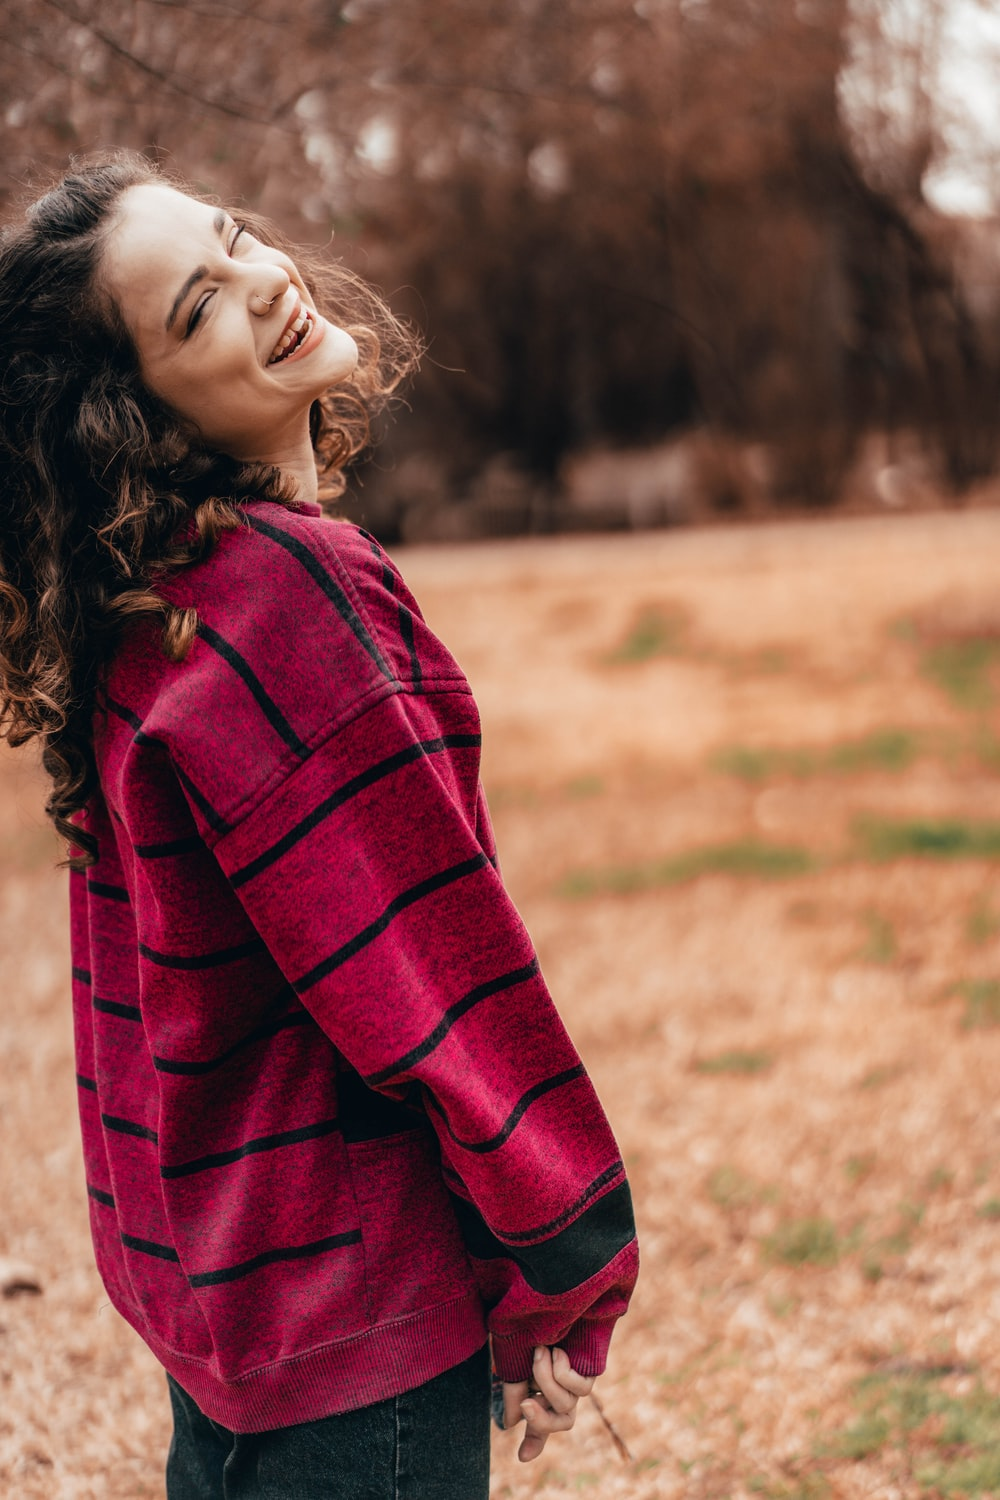 woman in red and black checkered long sleeve shirt standing on green grass field during daytime